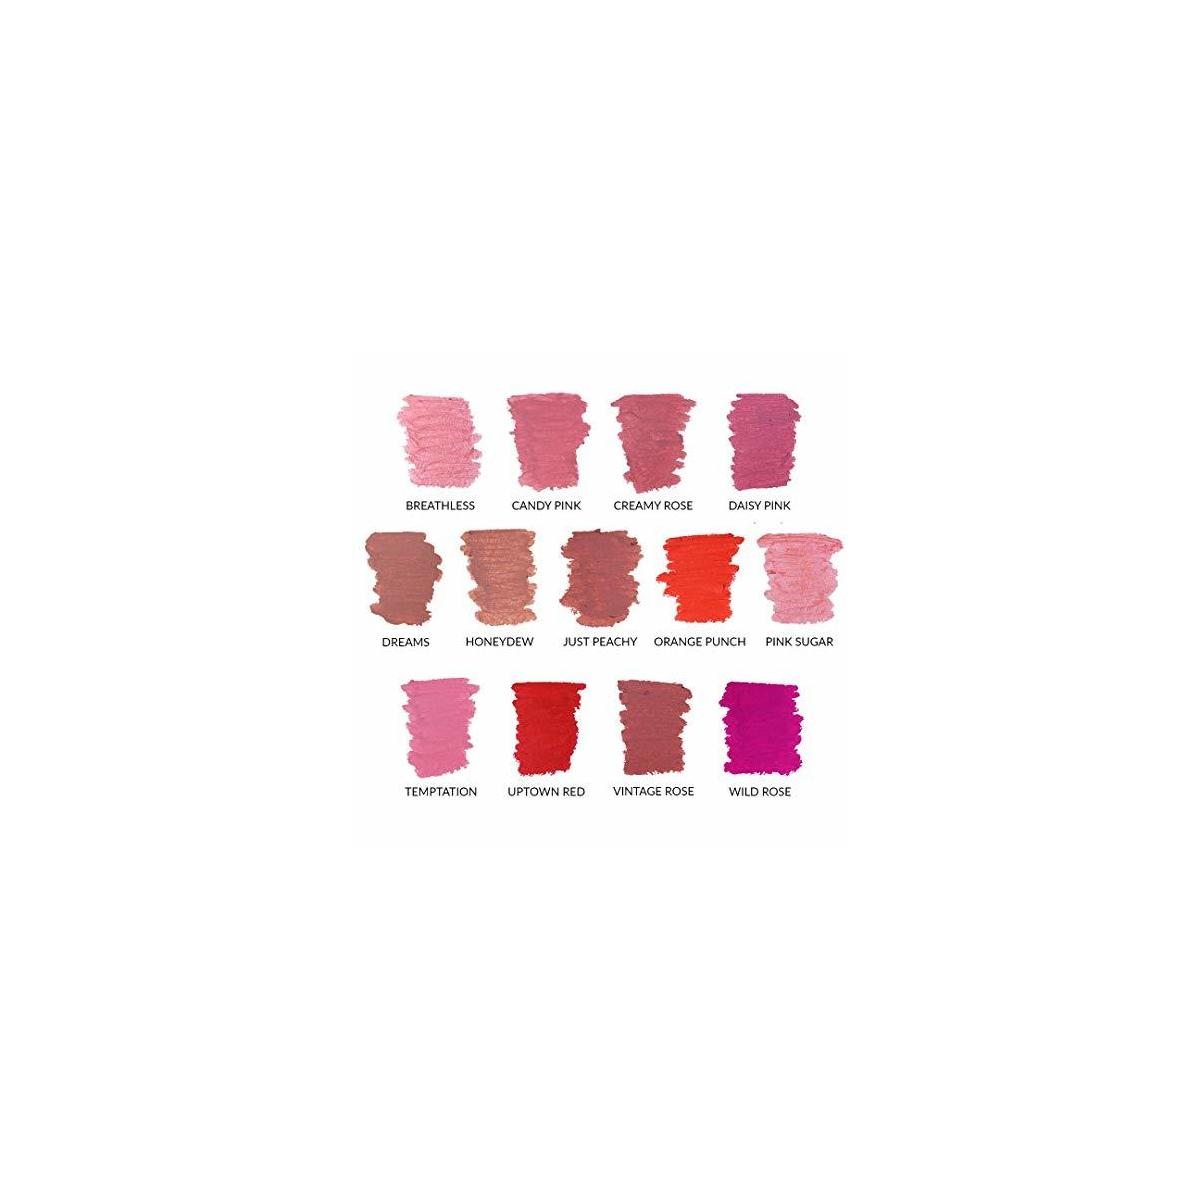 Super Moisture Lipstick by True + Luscious - Clean Formula, Smooth and Hydrating - Vegan and Cruelty Free Lipstick, Non Toxic and Lead Free Shade: Vintage Rose - 0.12 oz